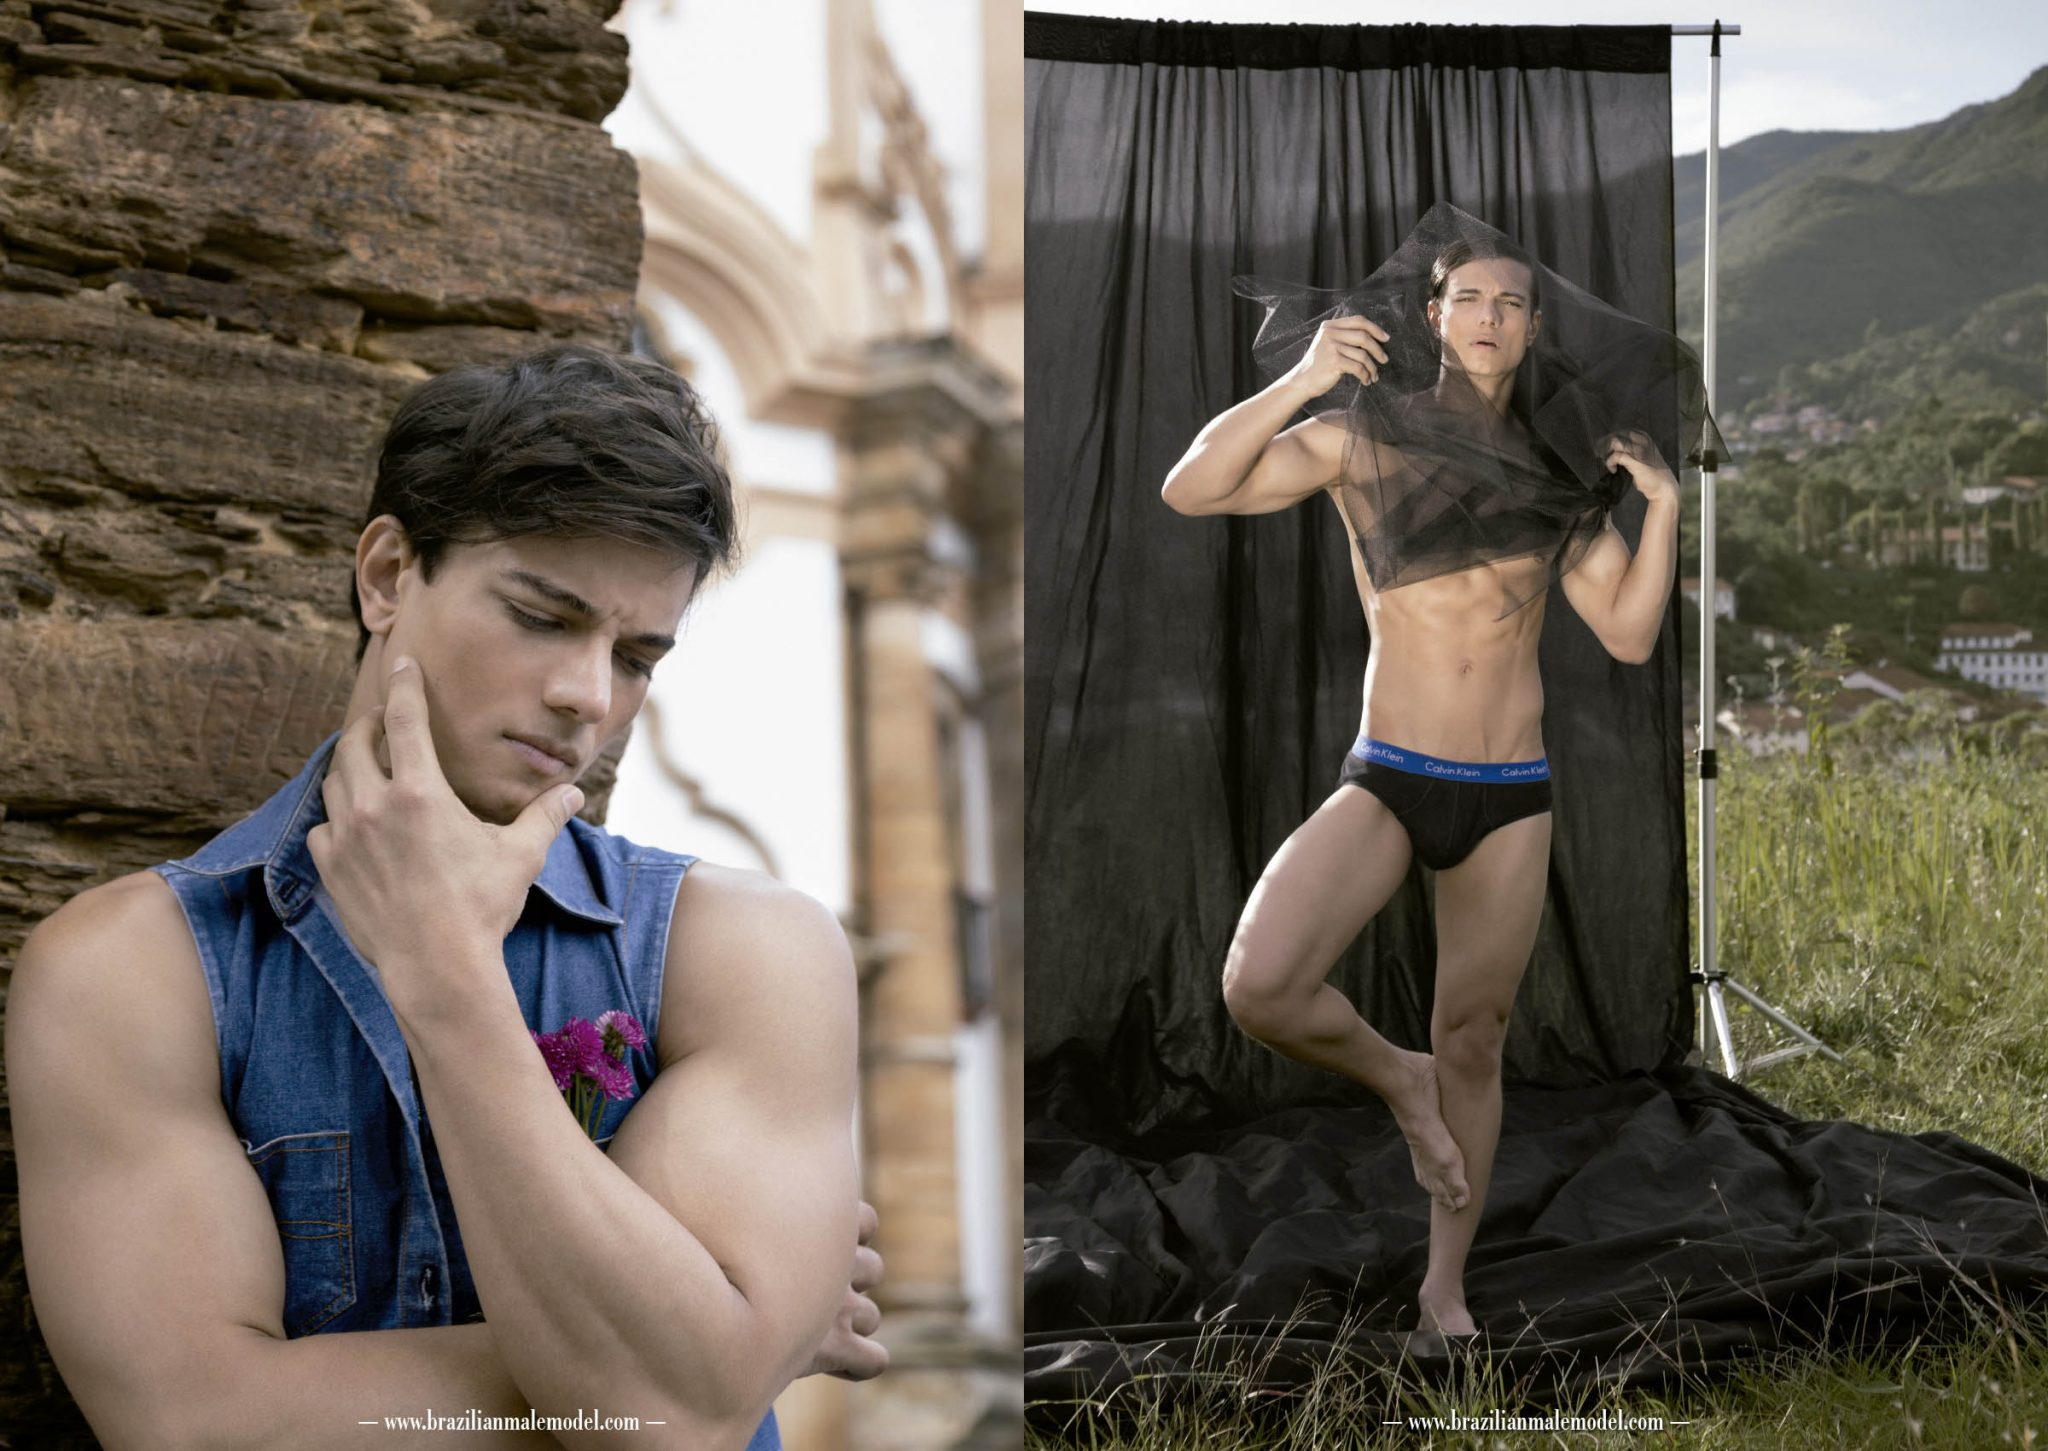 The Cover Boy Sulevan Araujo by Filipe Galgani - Brazilian Male Model Magazine